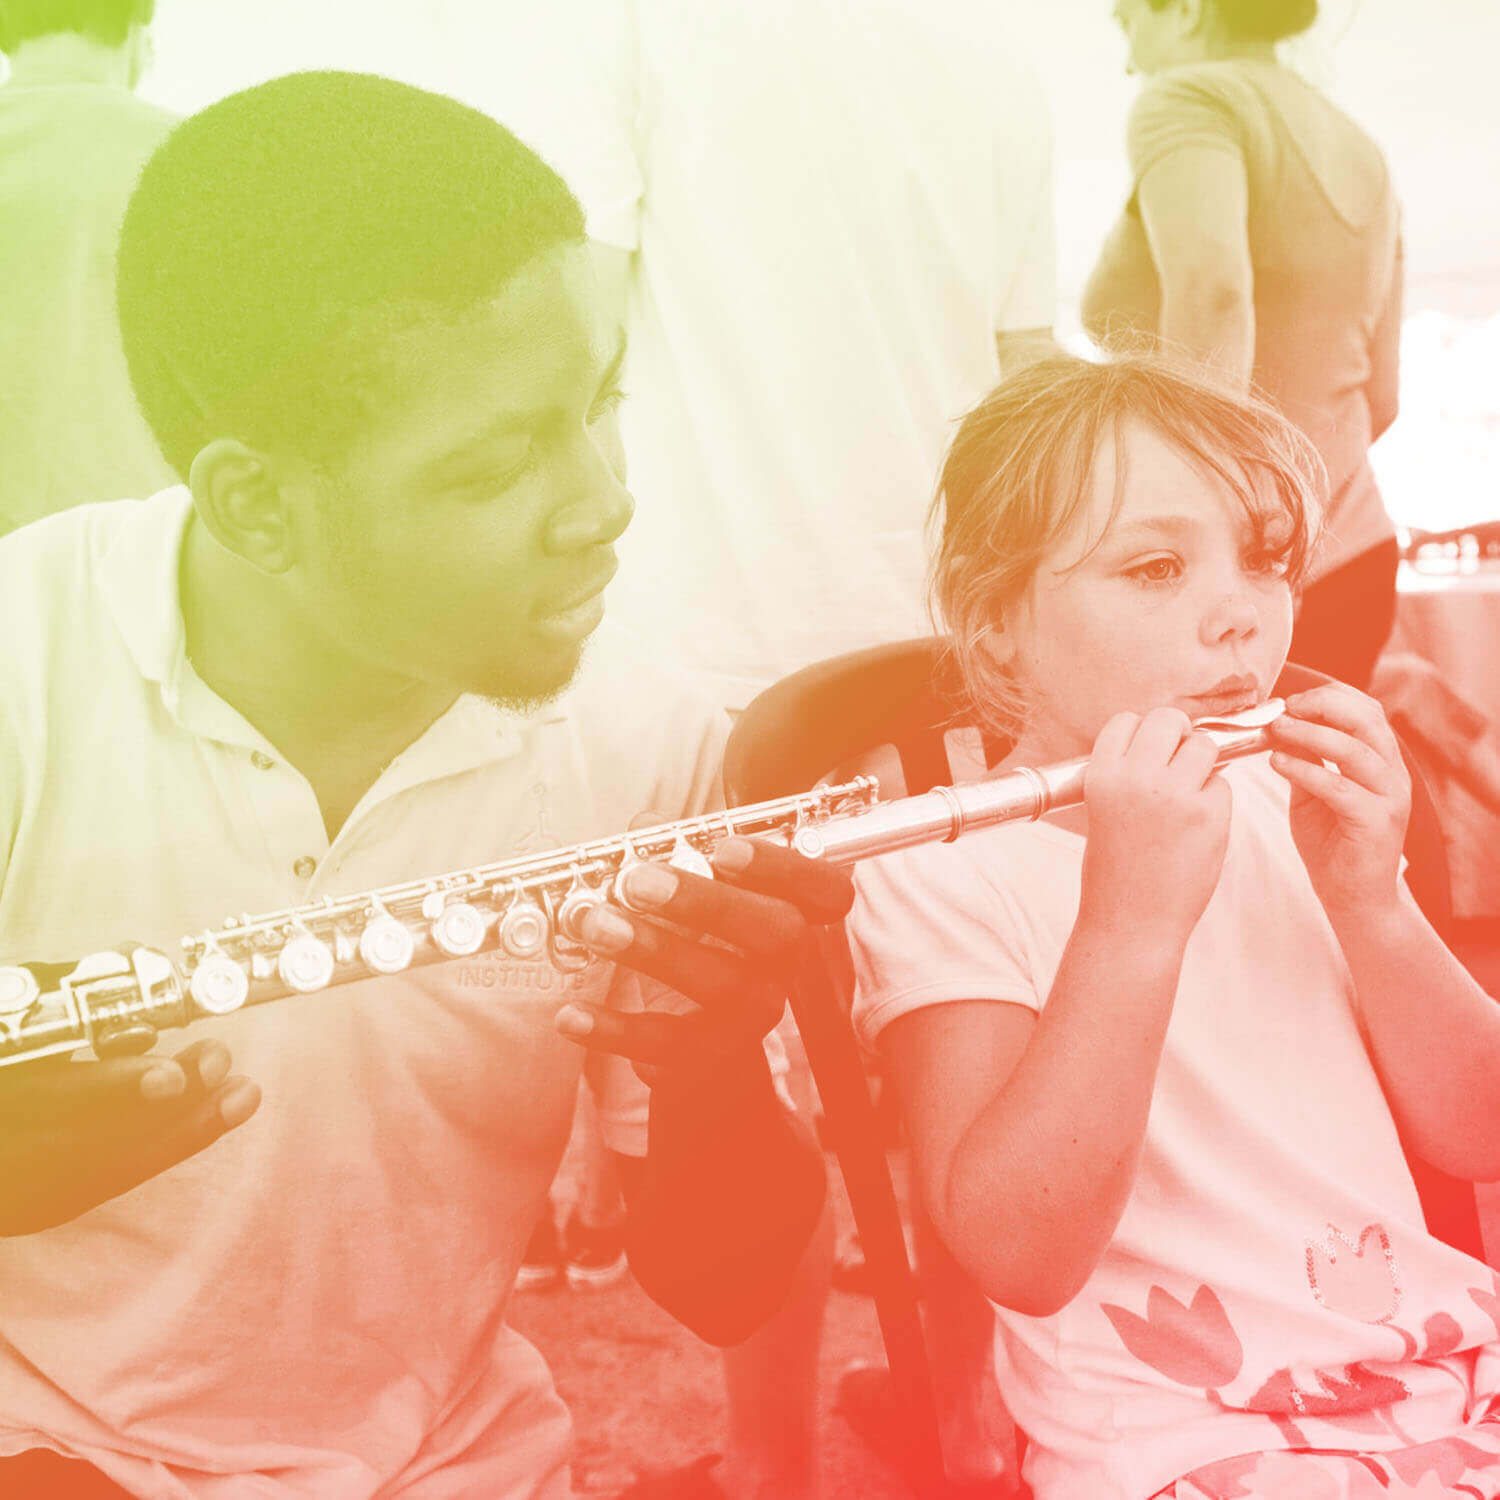 Musary_images_0011_6-flute-girl-treated